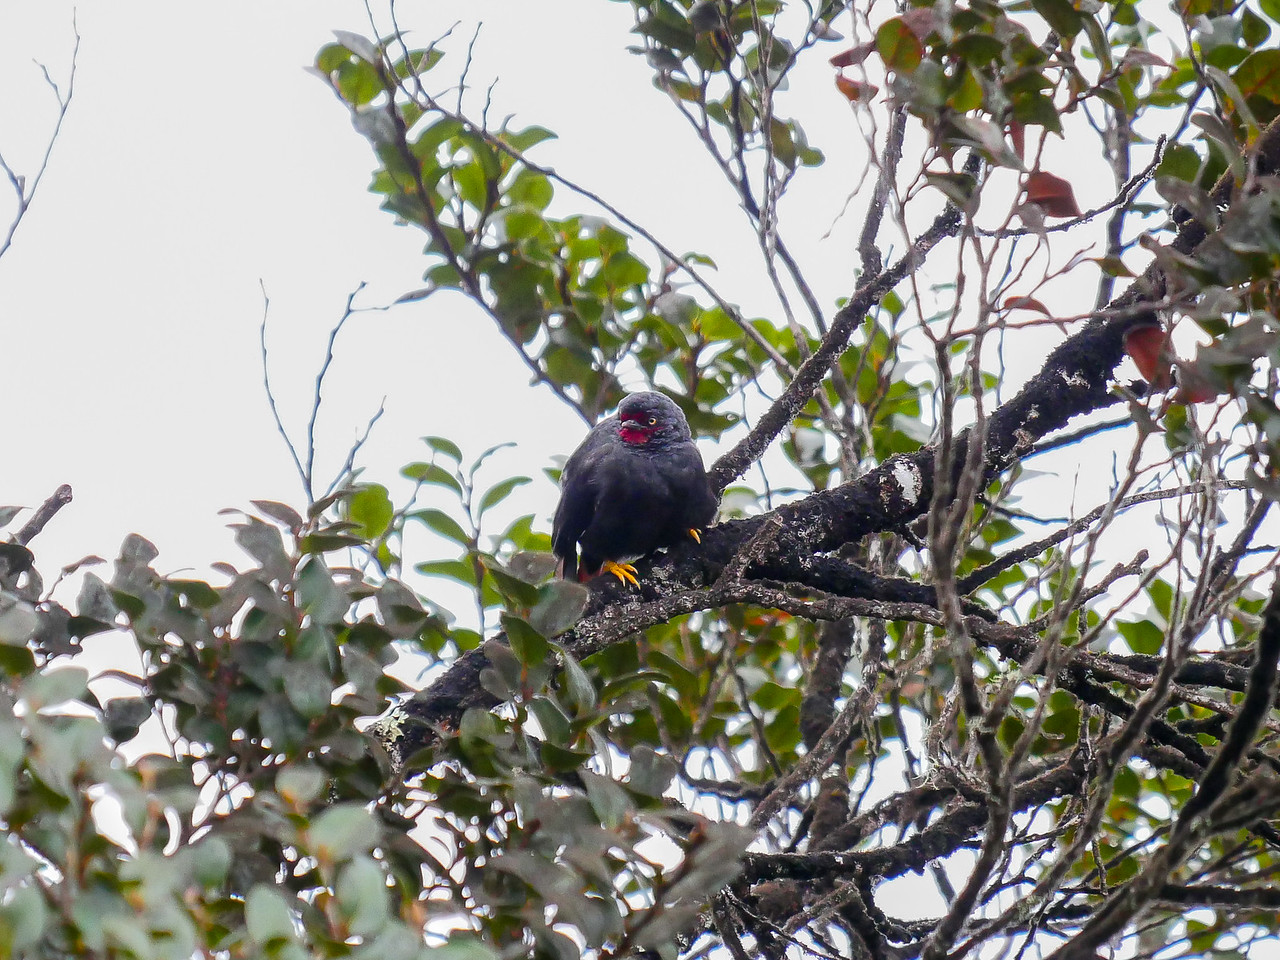 Black Sittella - a rare bird of the high mountain forests